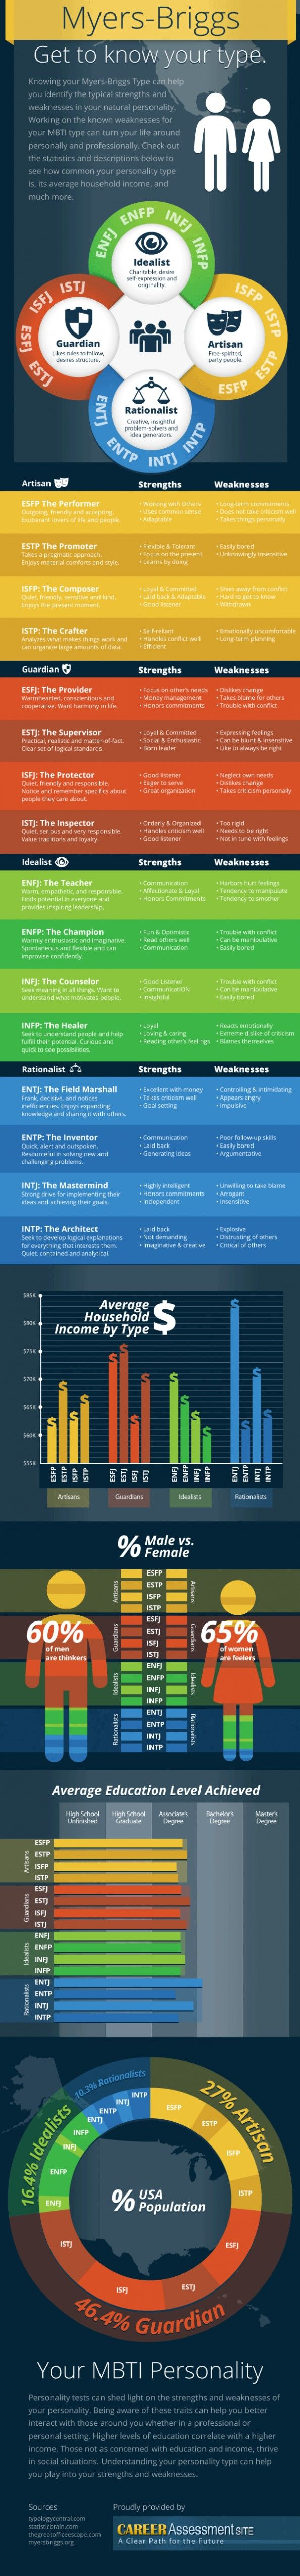 Myers-Briggs Personality Socio-Economic Status Infographic - all the personality types by average income, gender breakdown, etc.